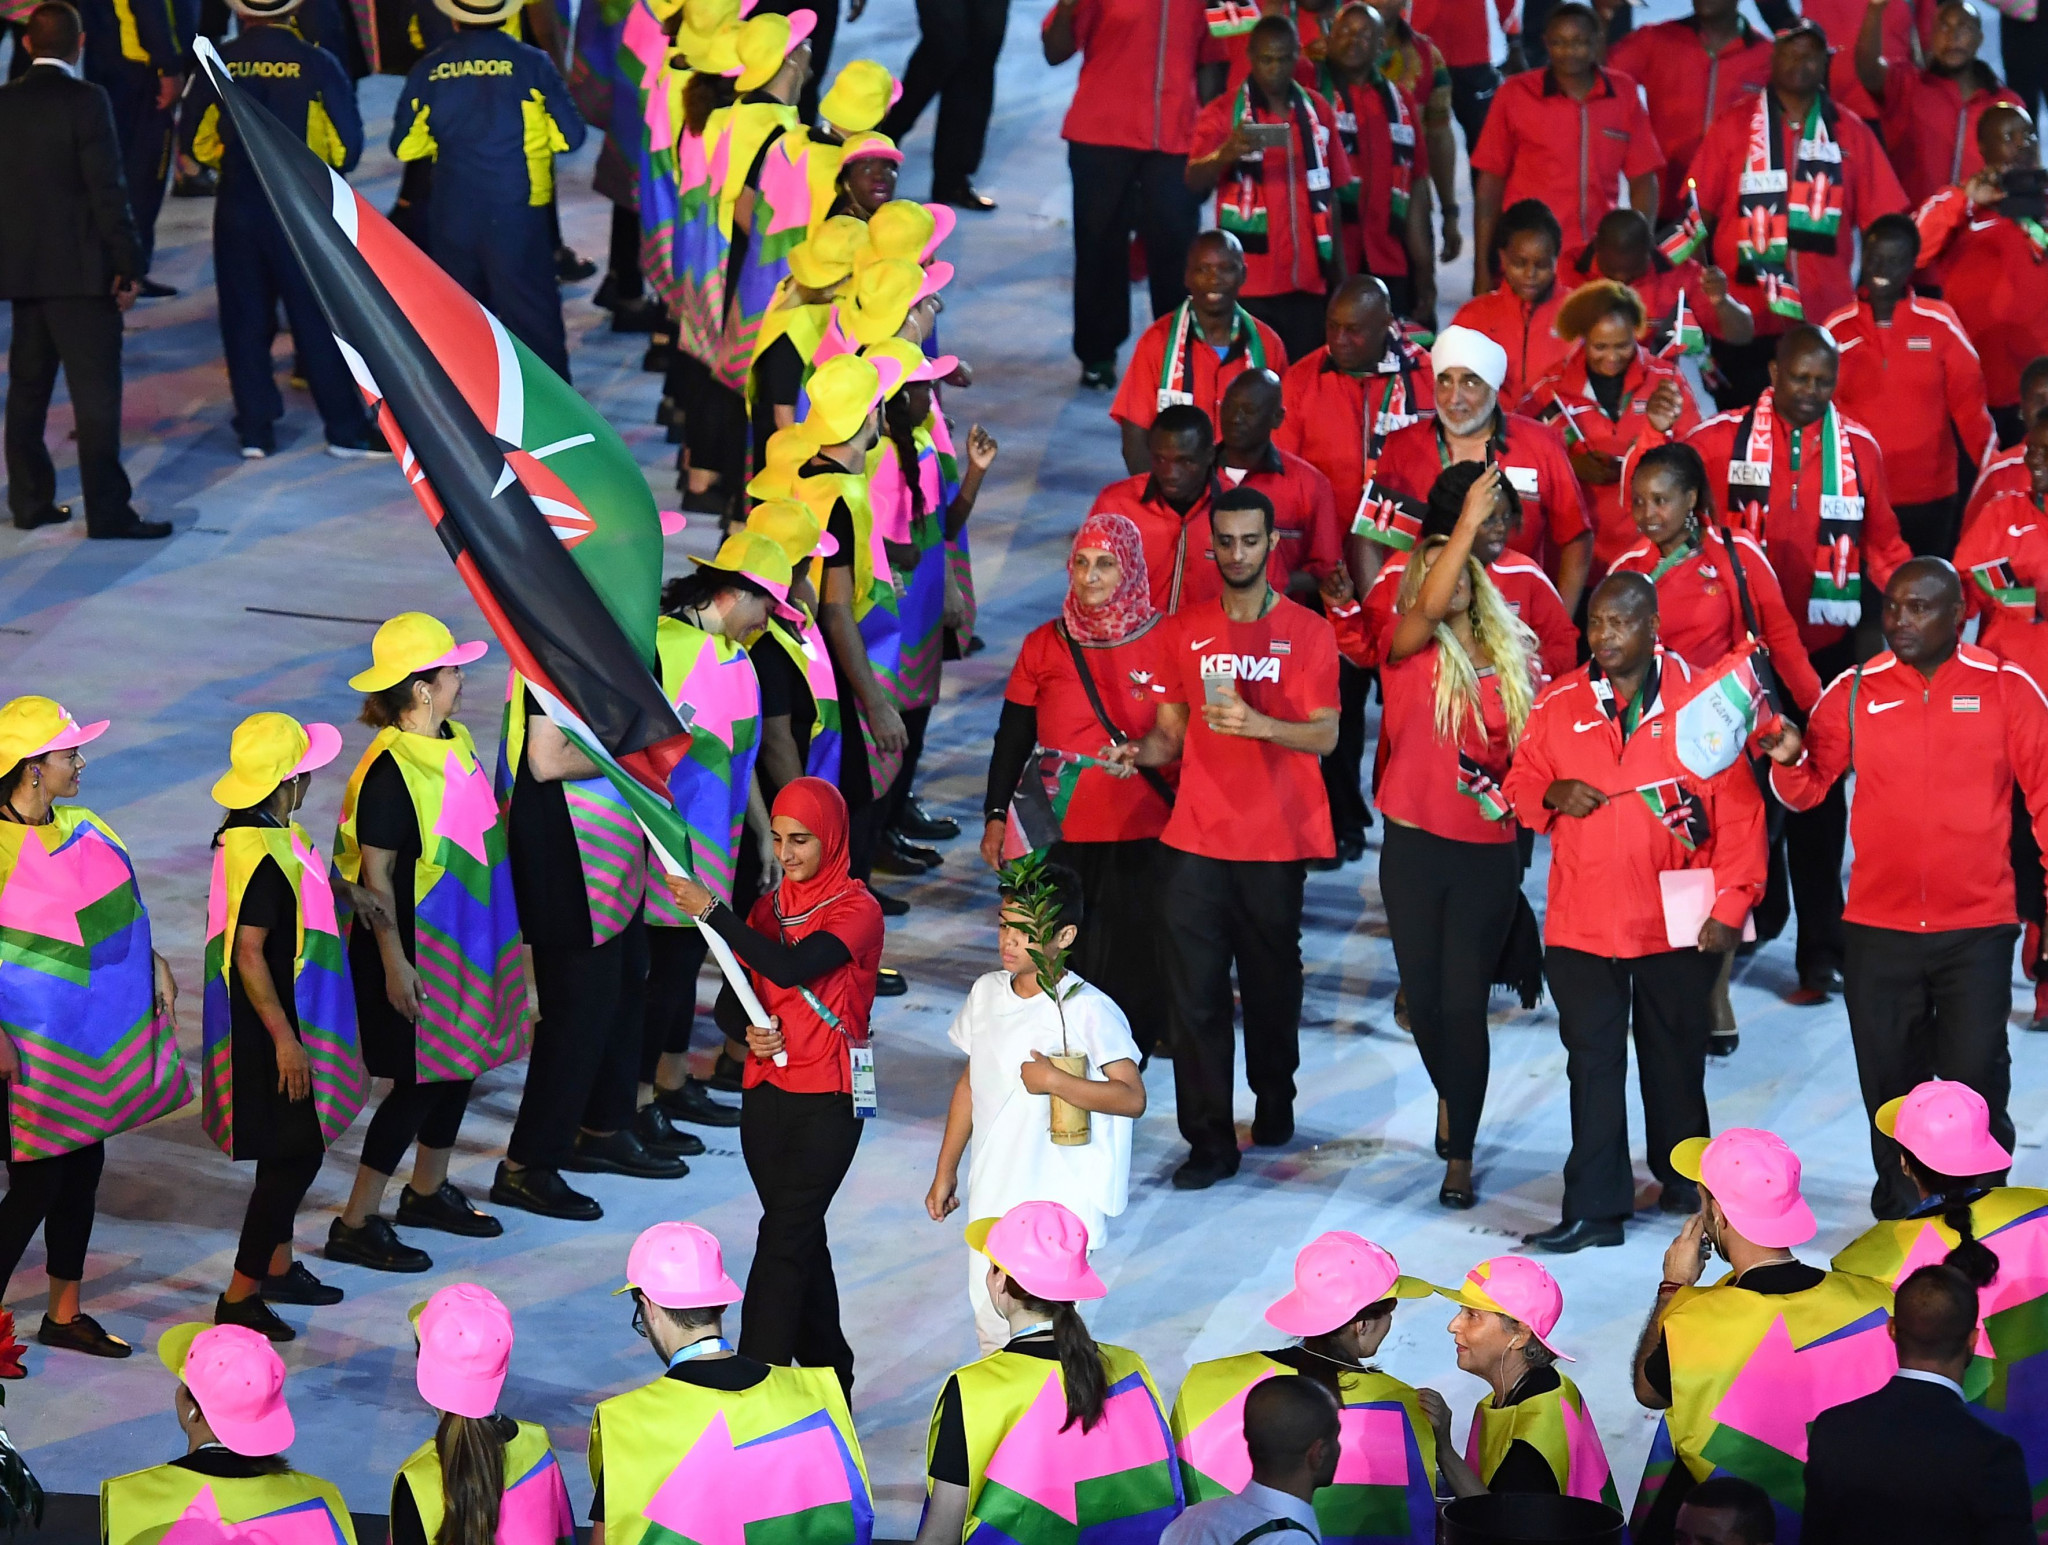 Kenya's appearance at Rio 2016 was overshadowed by corruption claims ©Getty Images